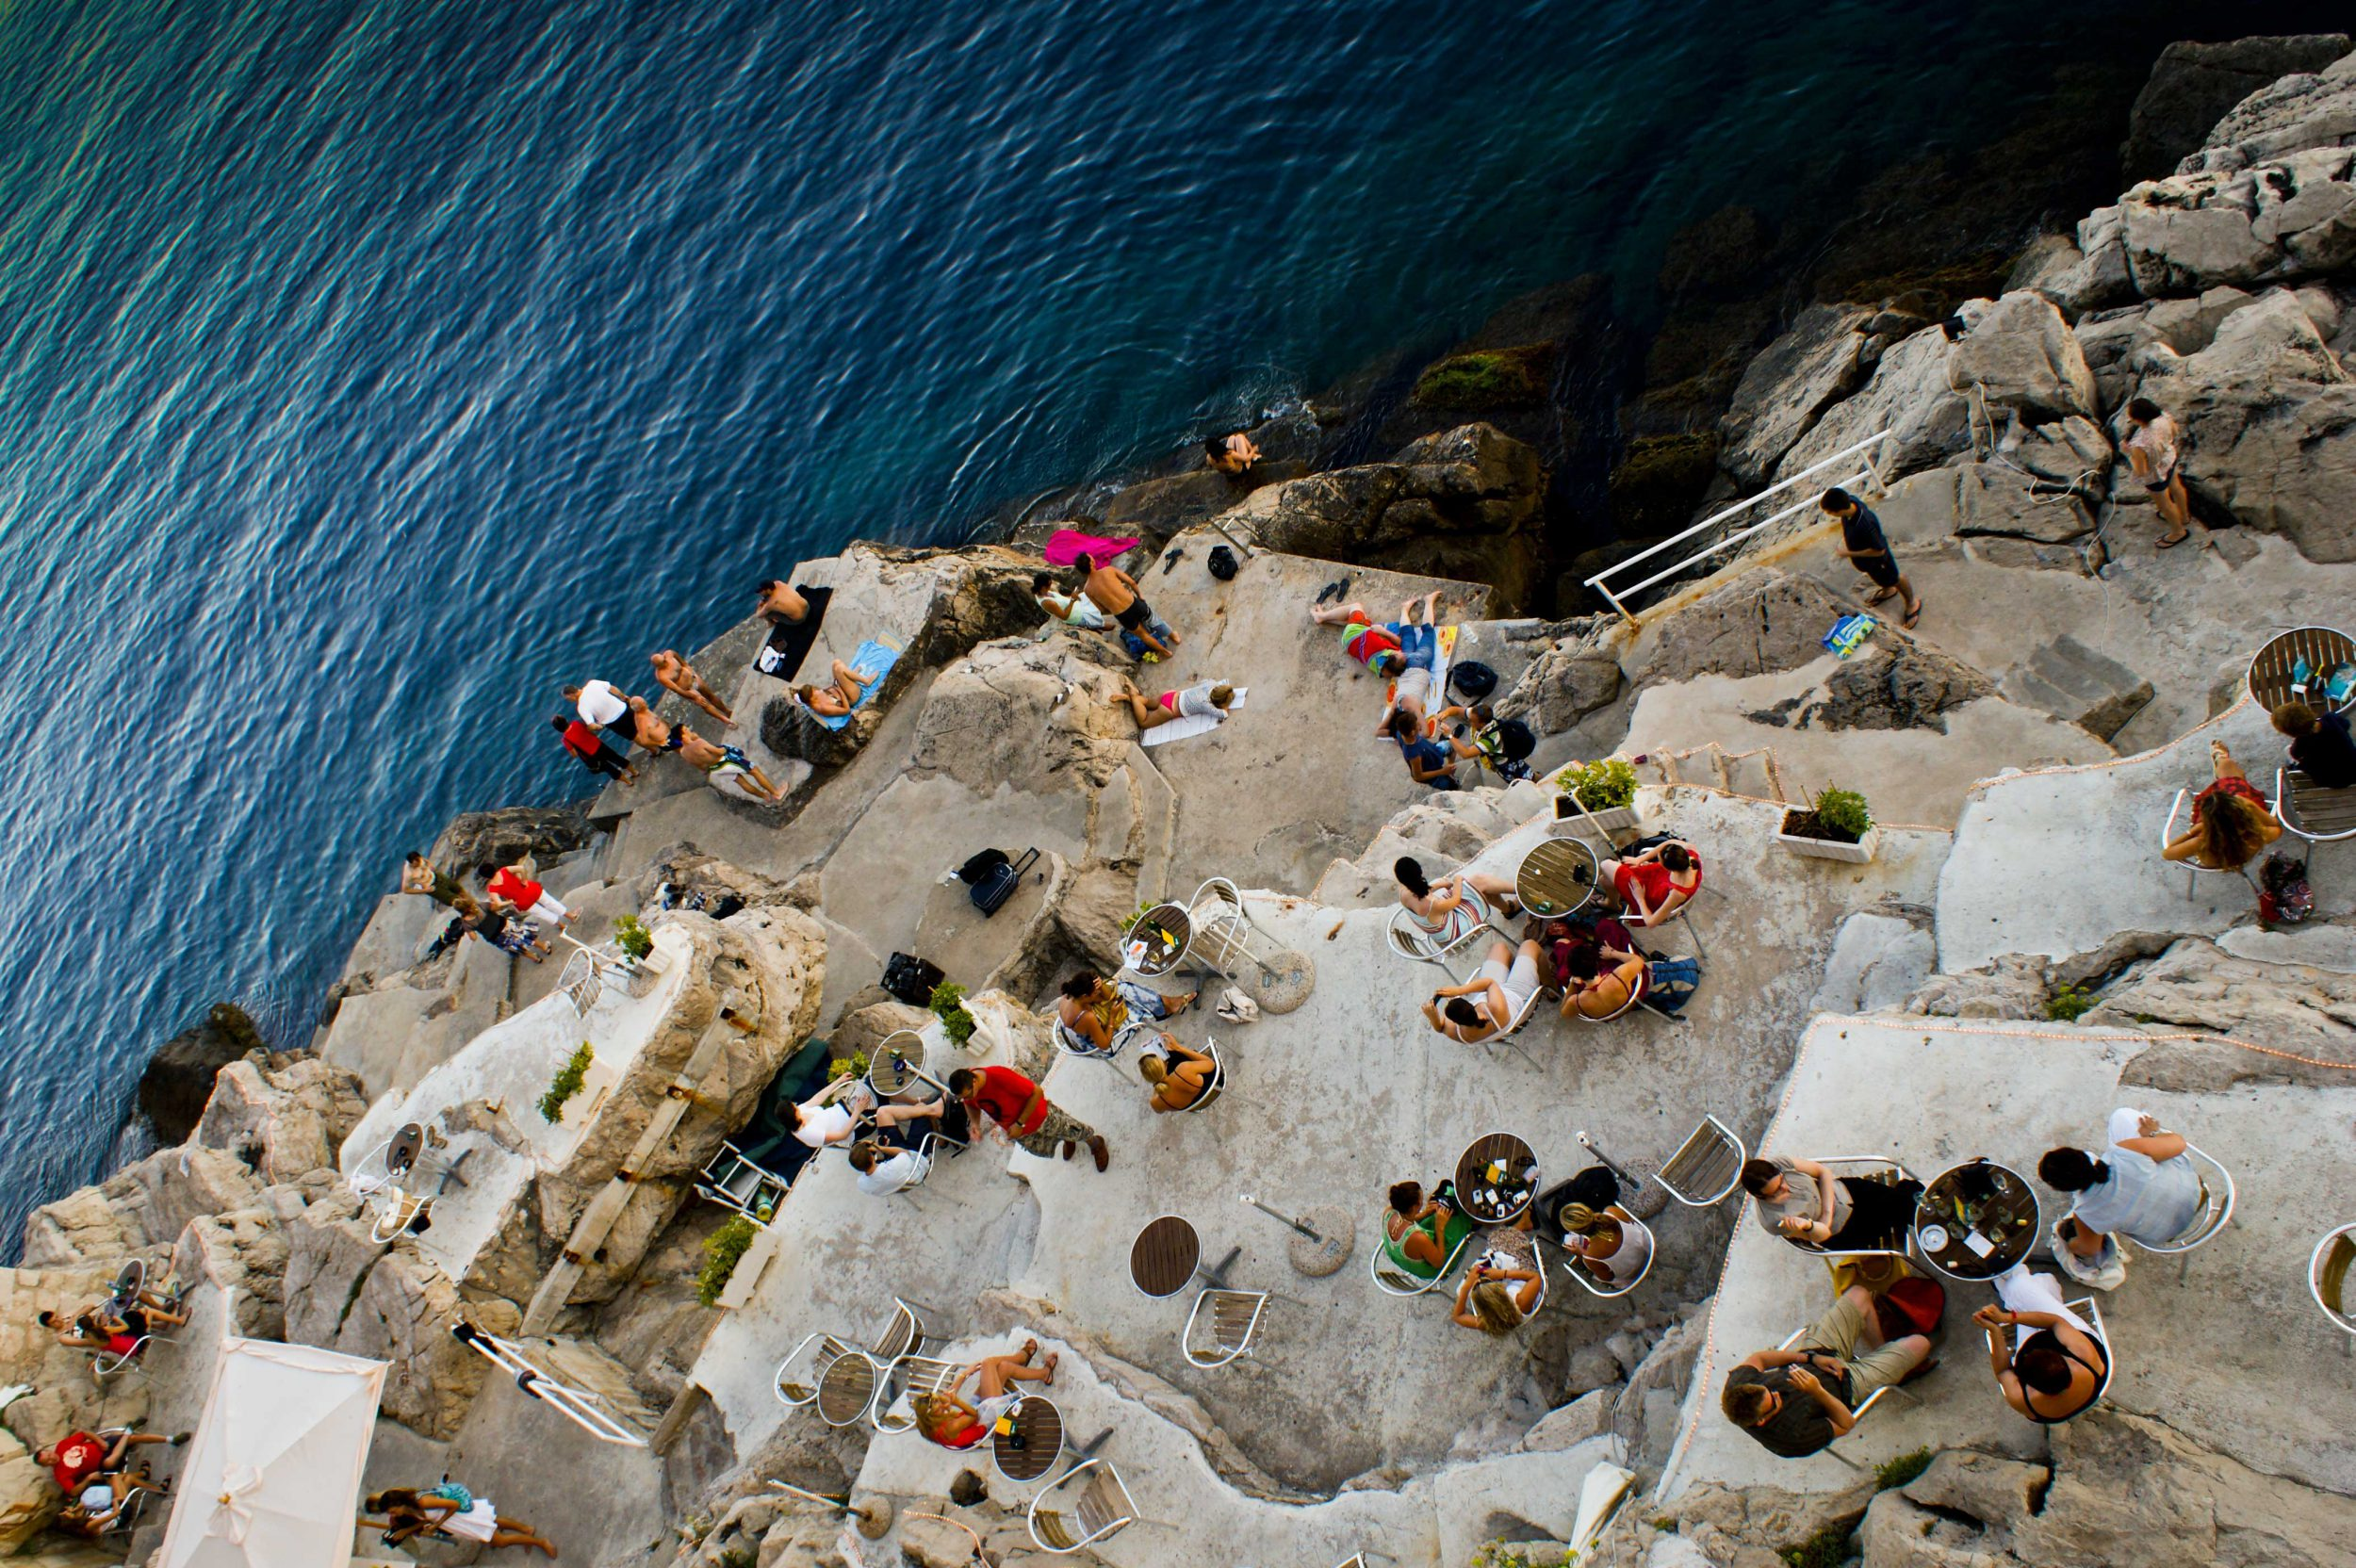 Aerial view of Buza Bar with groups seated at tables on the rocks, one of many romantic destinations in Croatia